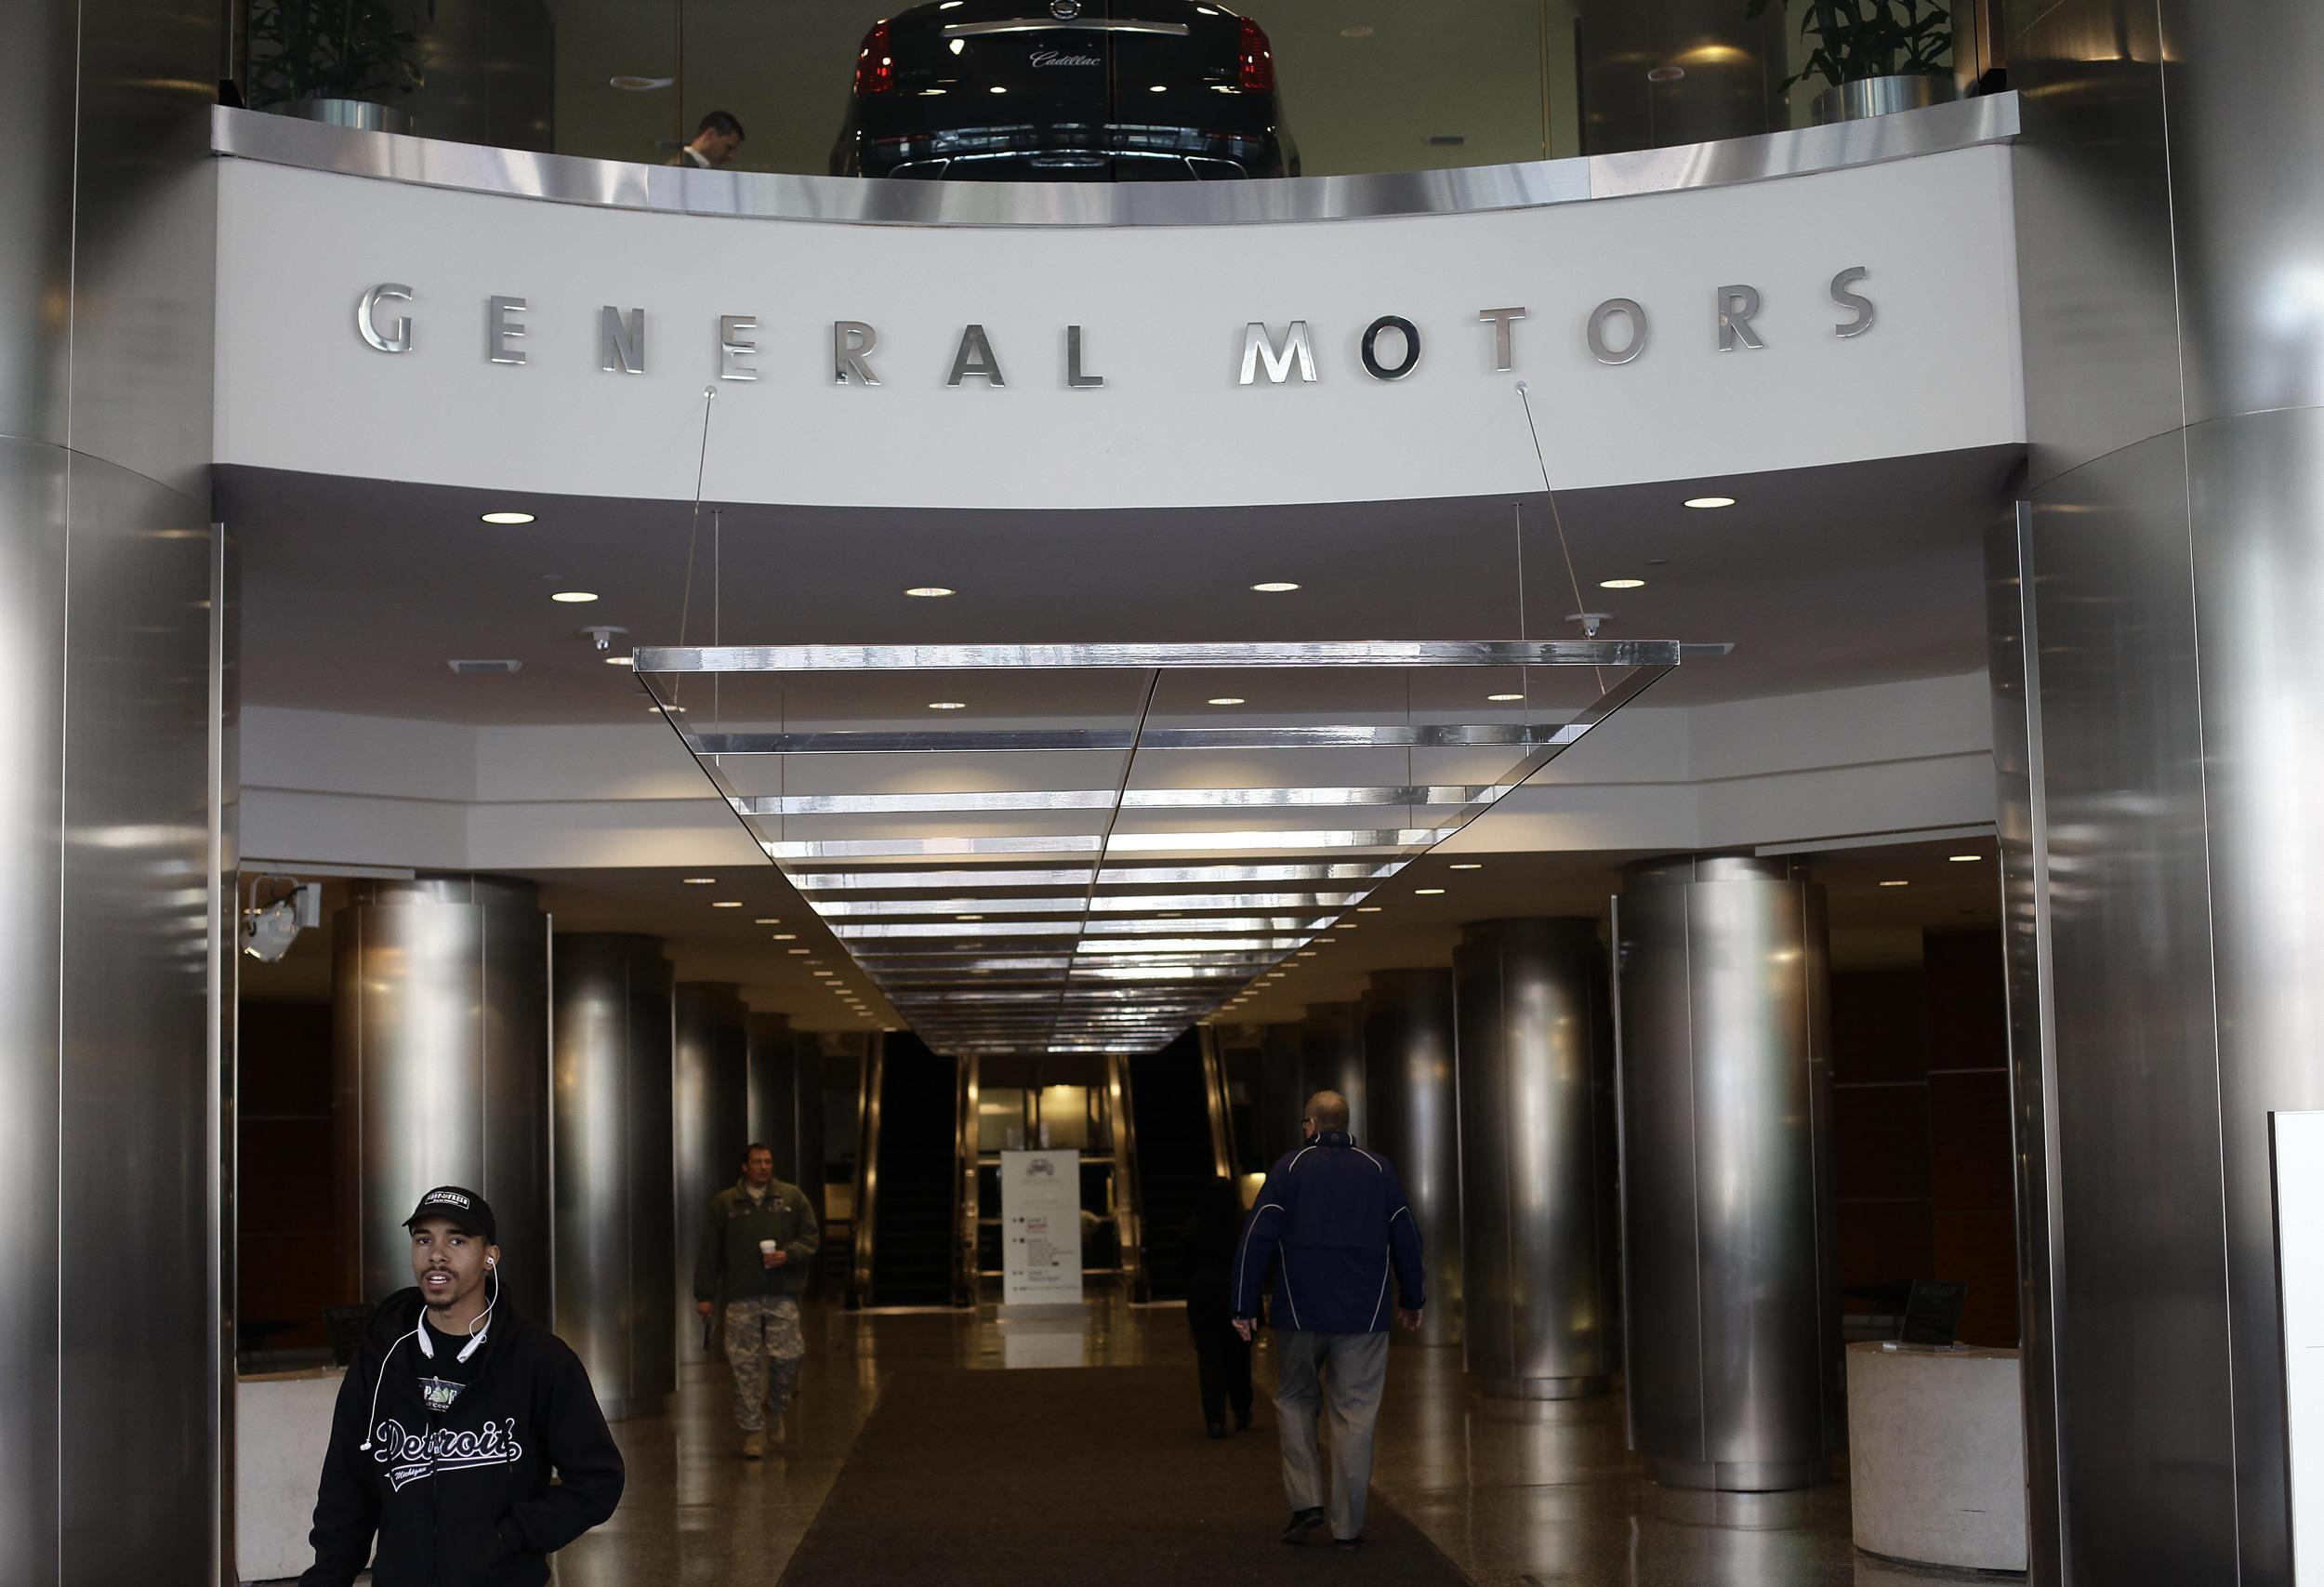 Gm seeks to shield itself from ignition lawsuits nbc news for General motors near me